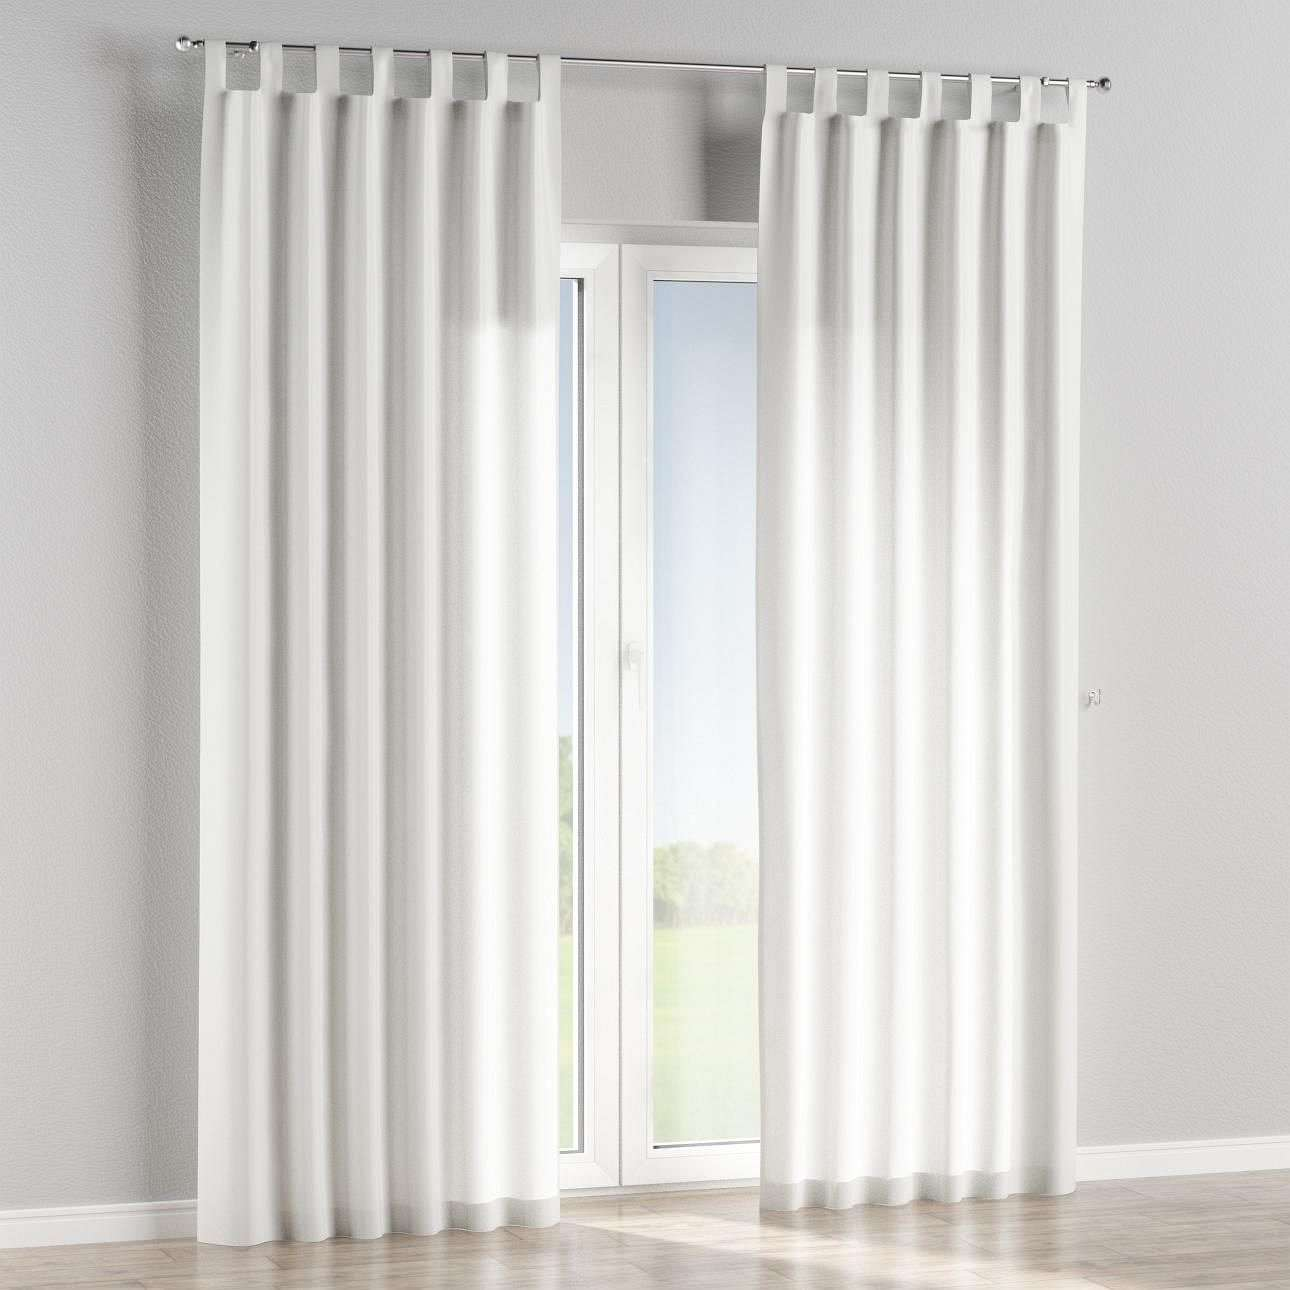 Tab top lined curtains in collection Rustica, fabric: 138-11